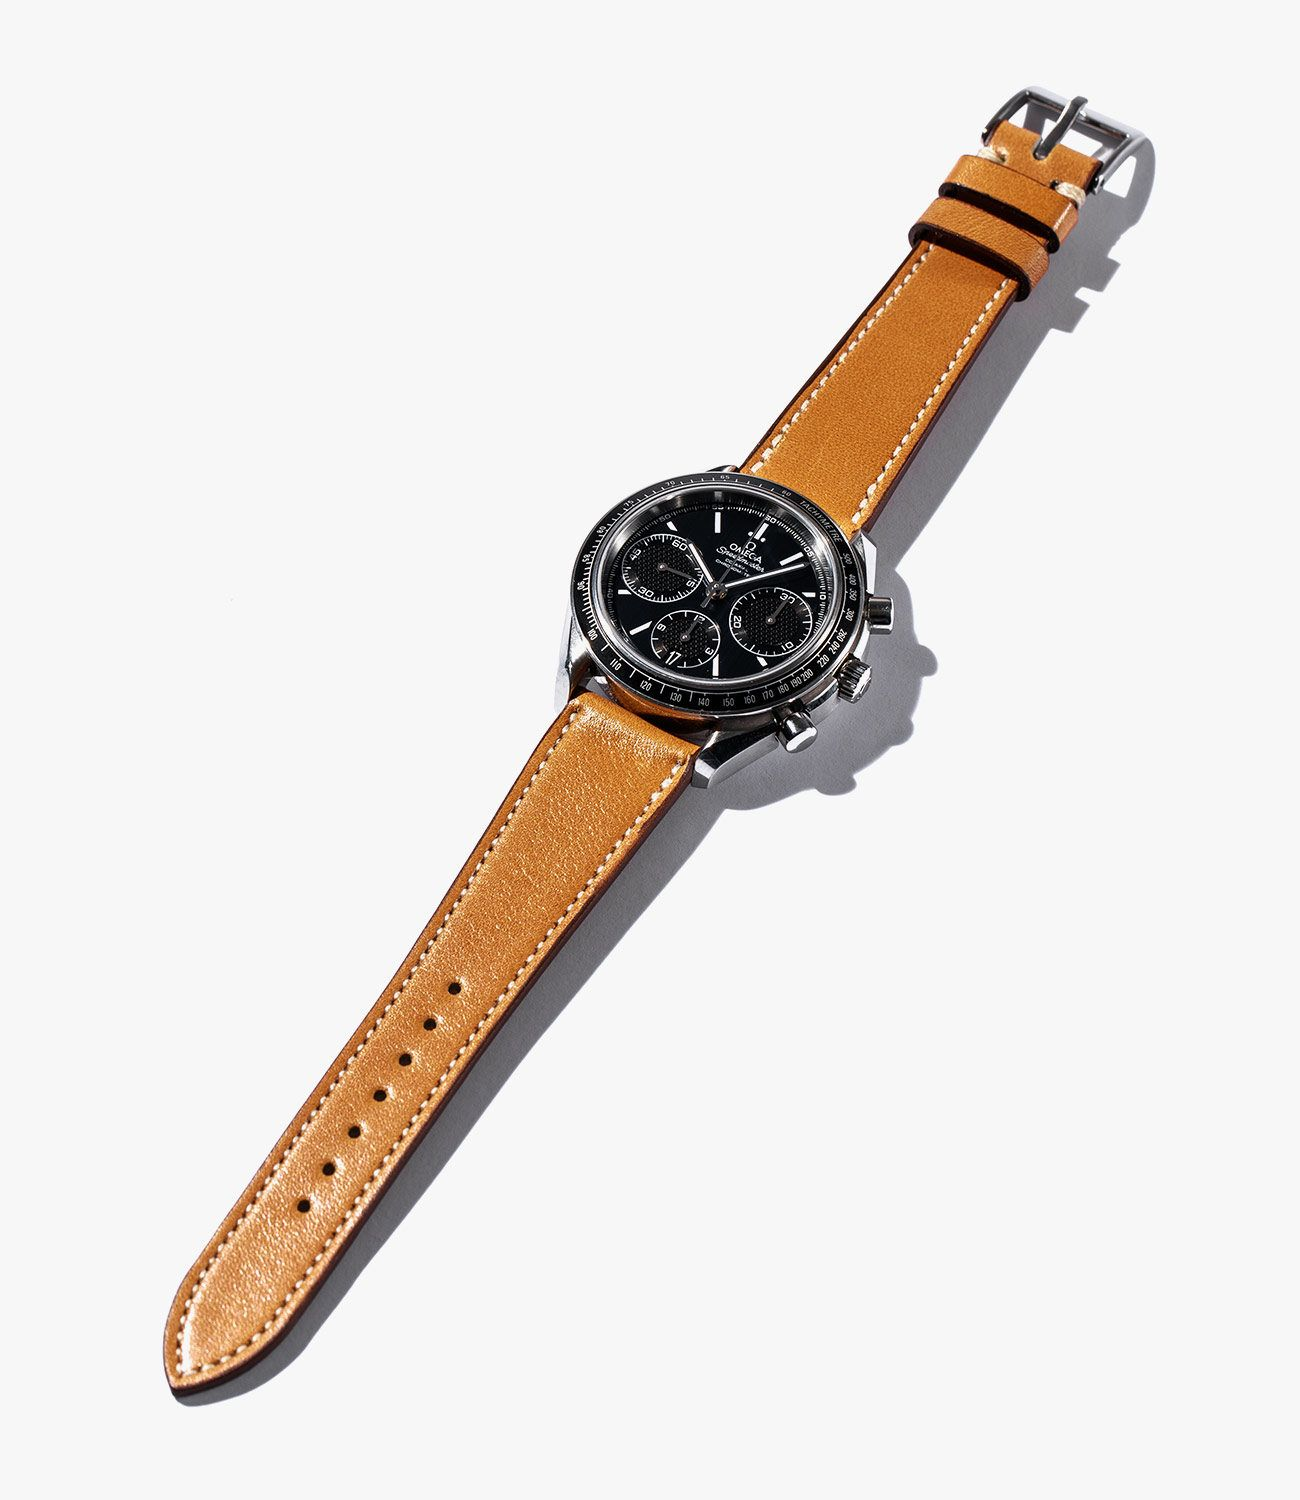 Leather-Watch-Bands-gear-patrol-Crown-and-Buckle-Tan-slide-1